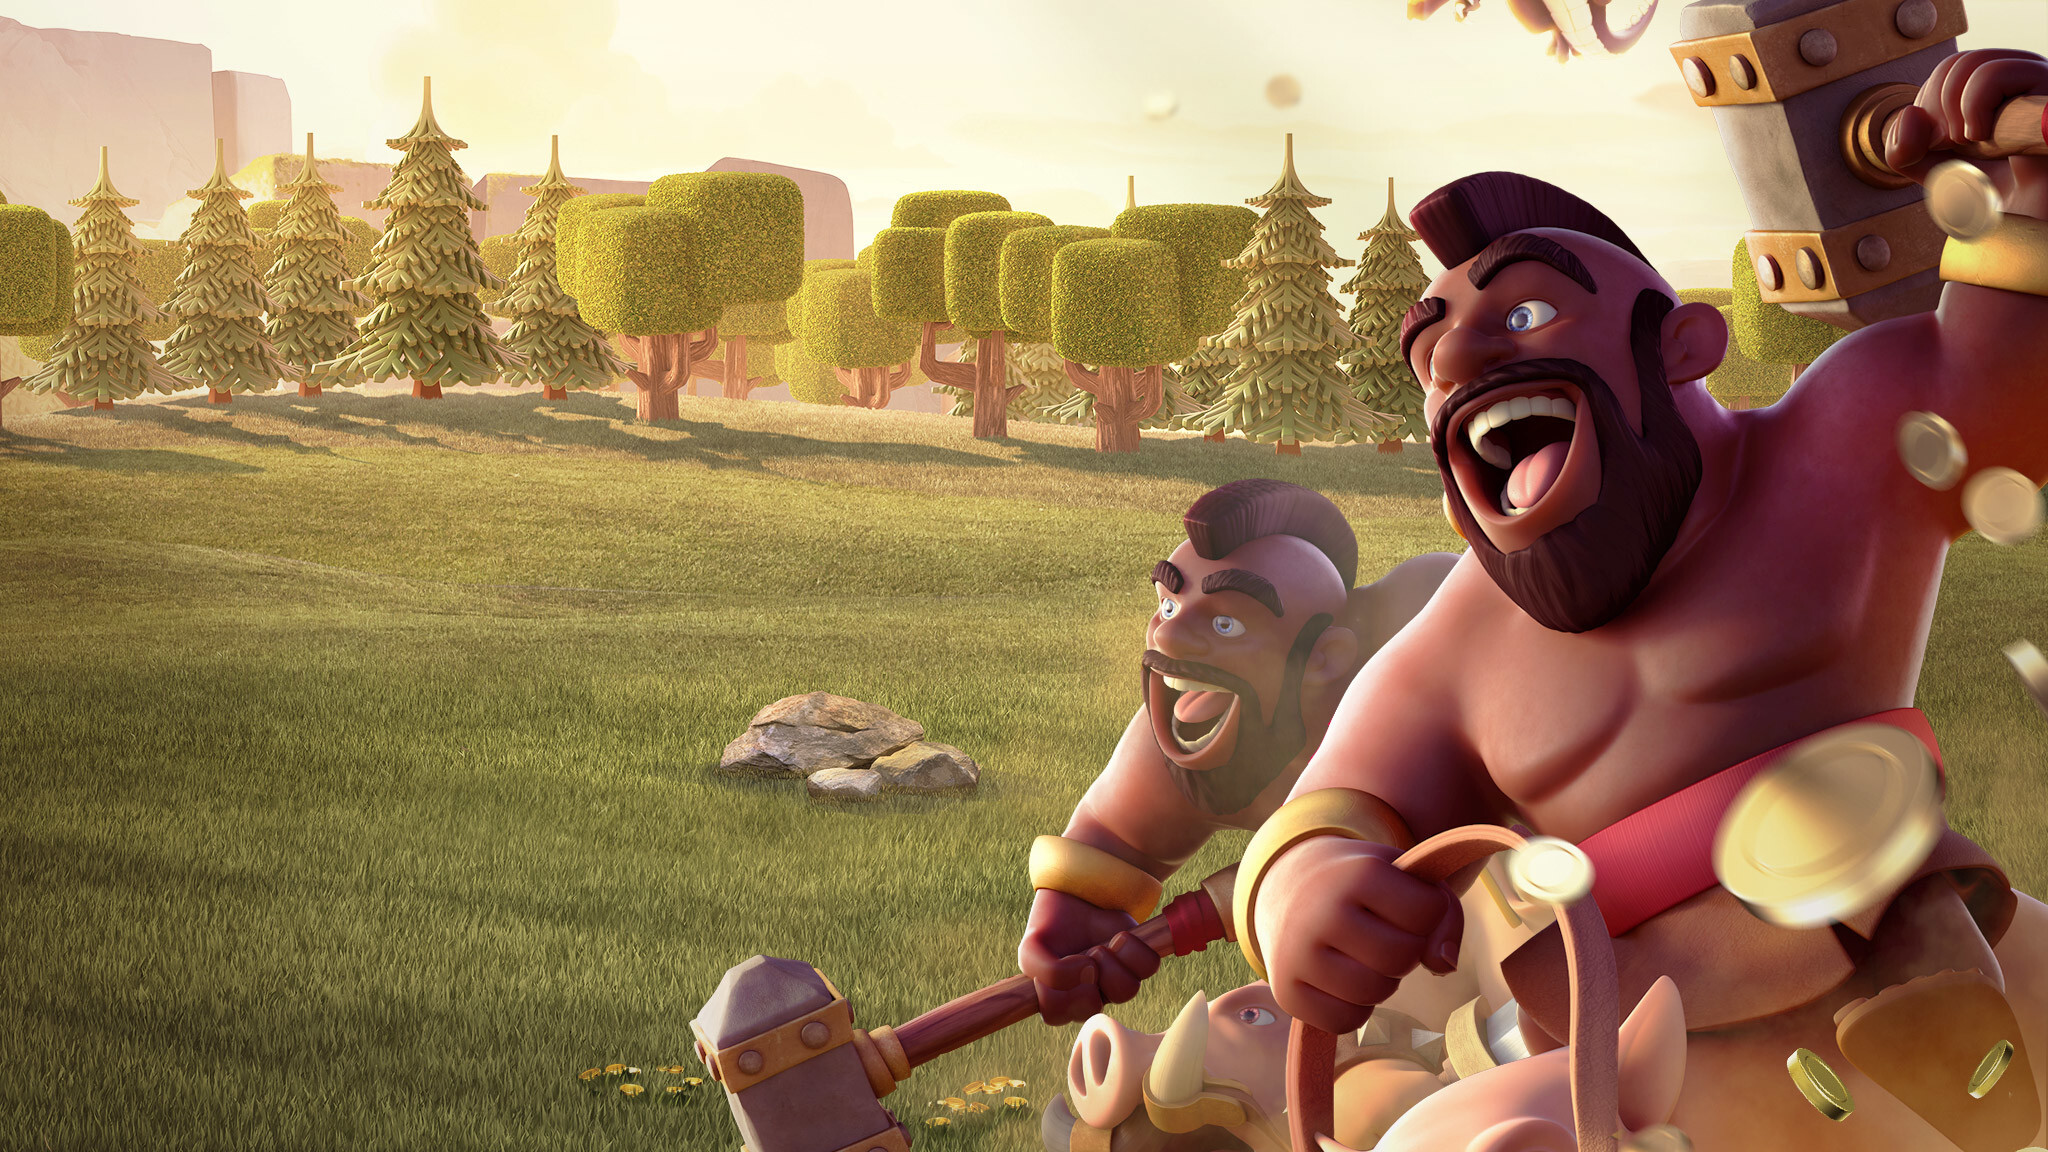 Barbarian Clash Of Clans Hd Hd Games 4k Wallpapers: 2048x1152 Hog Rider Clash Of Clans 2048x1152 Resolution HD